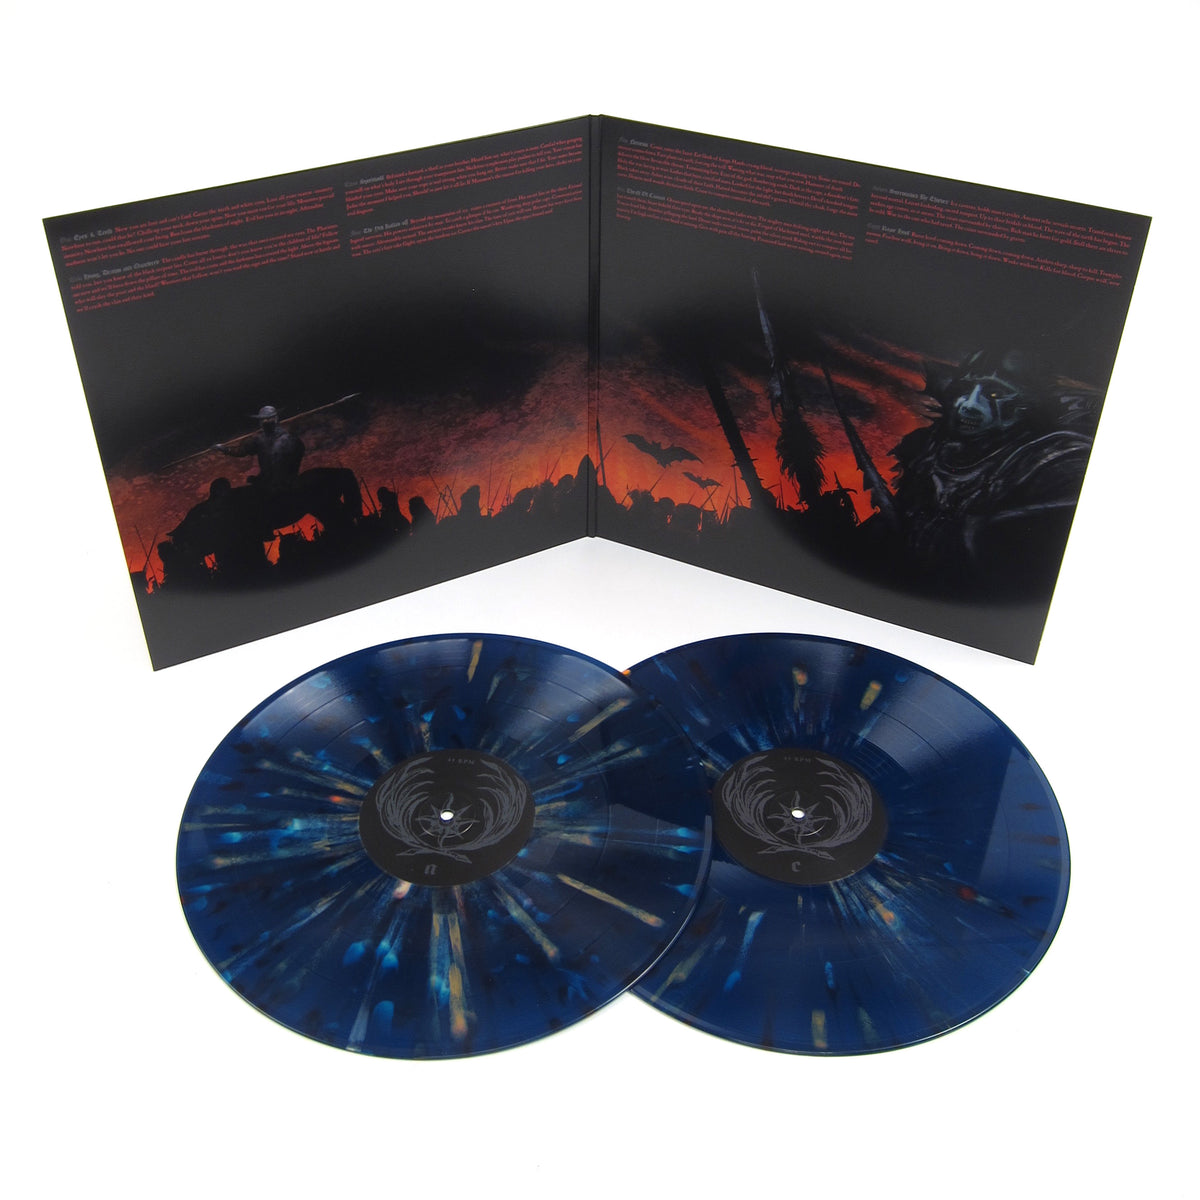 High On Fire: Surrounded By Thieves (Colored Vinyl) Vinyl 2LP